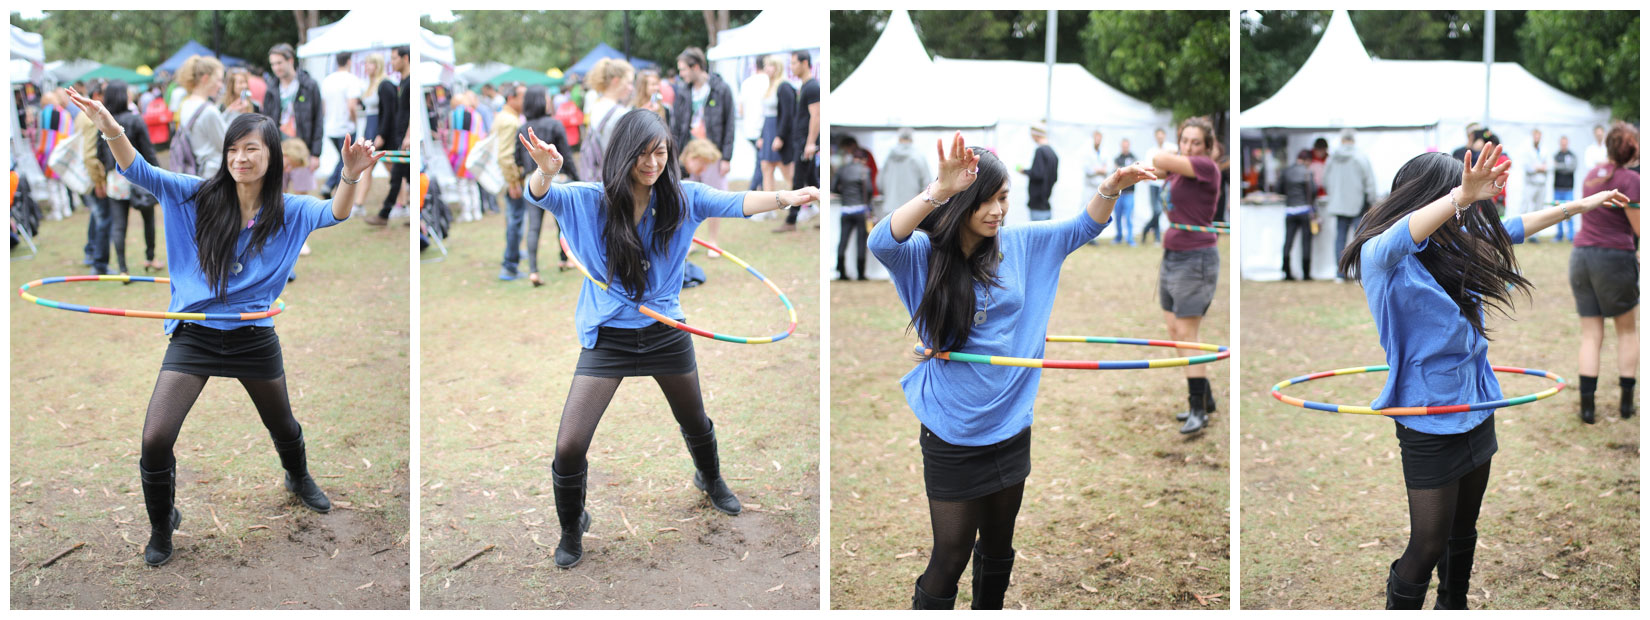 Me hula hooping 🙂